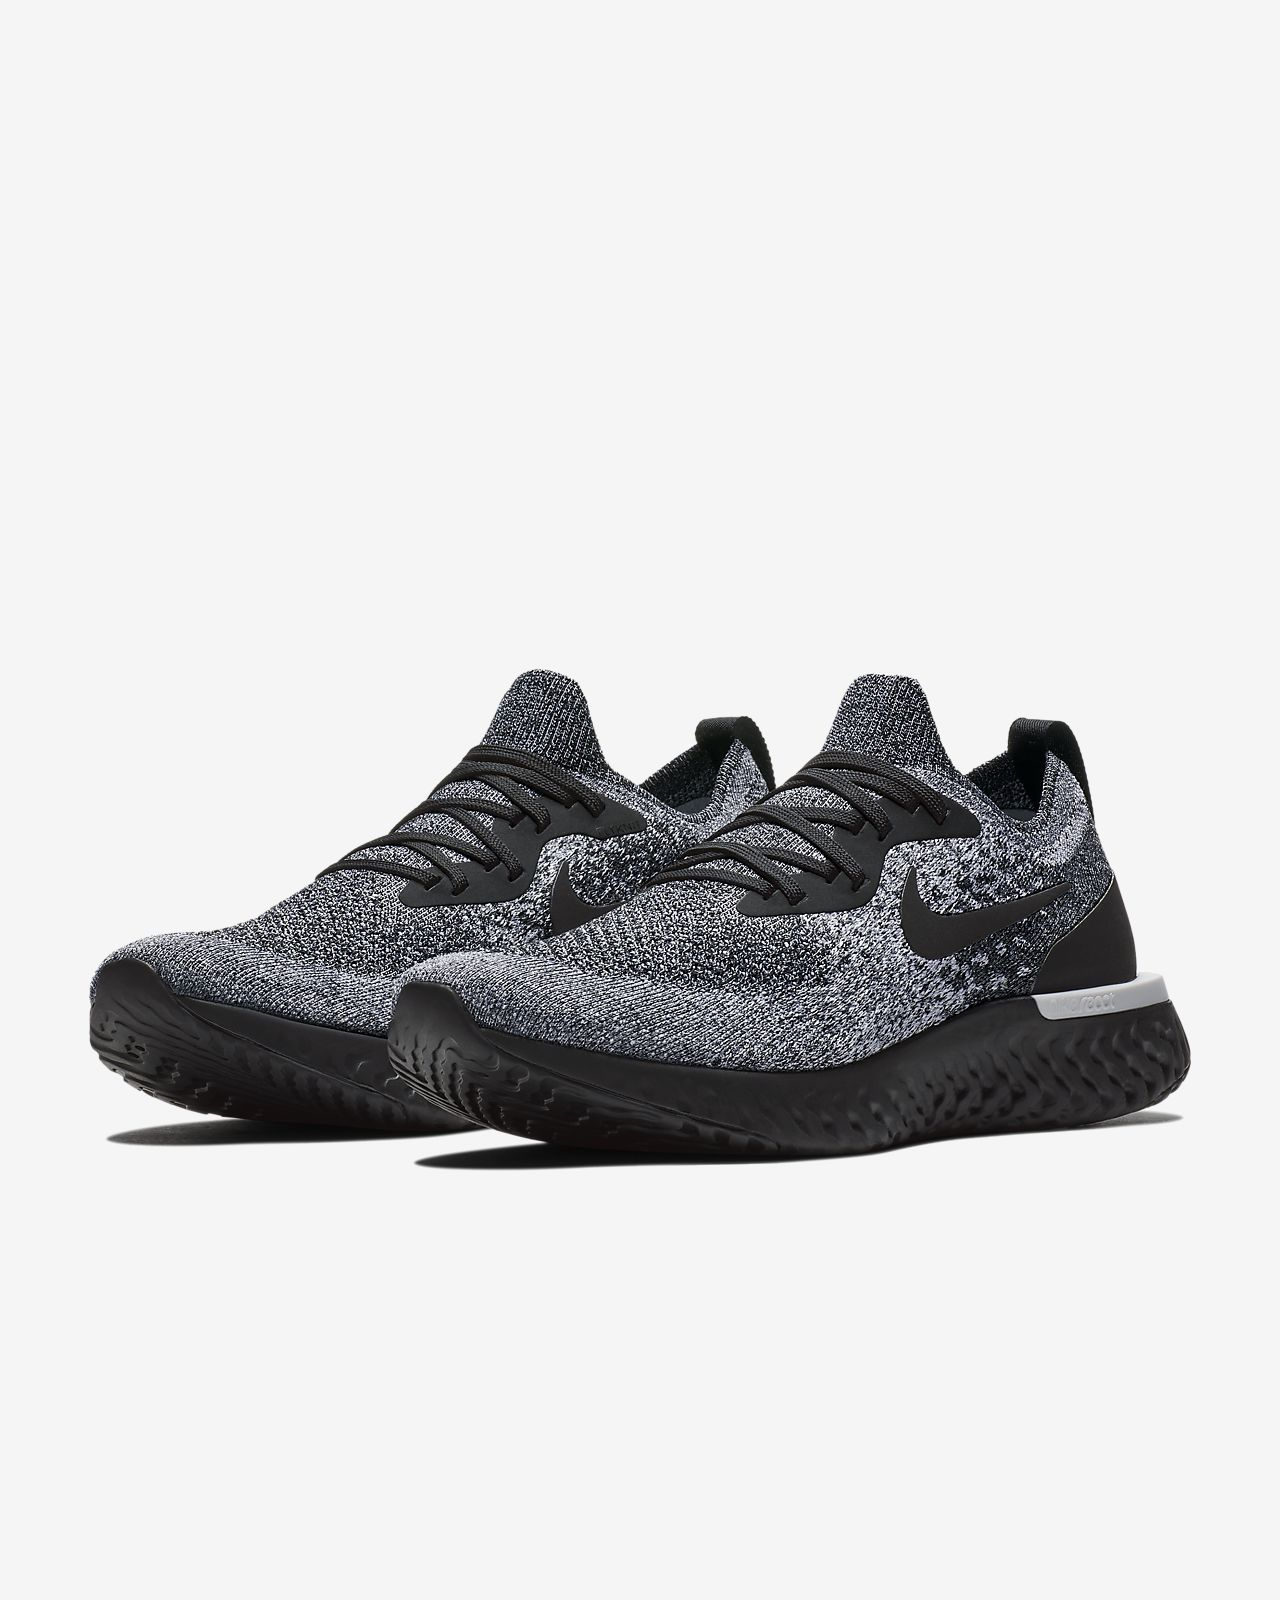 new product 9fa95 39a13 Men s Running Shoe. Nike Epic React Flyknit